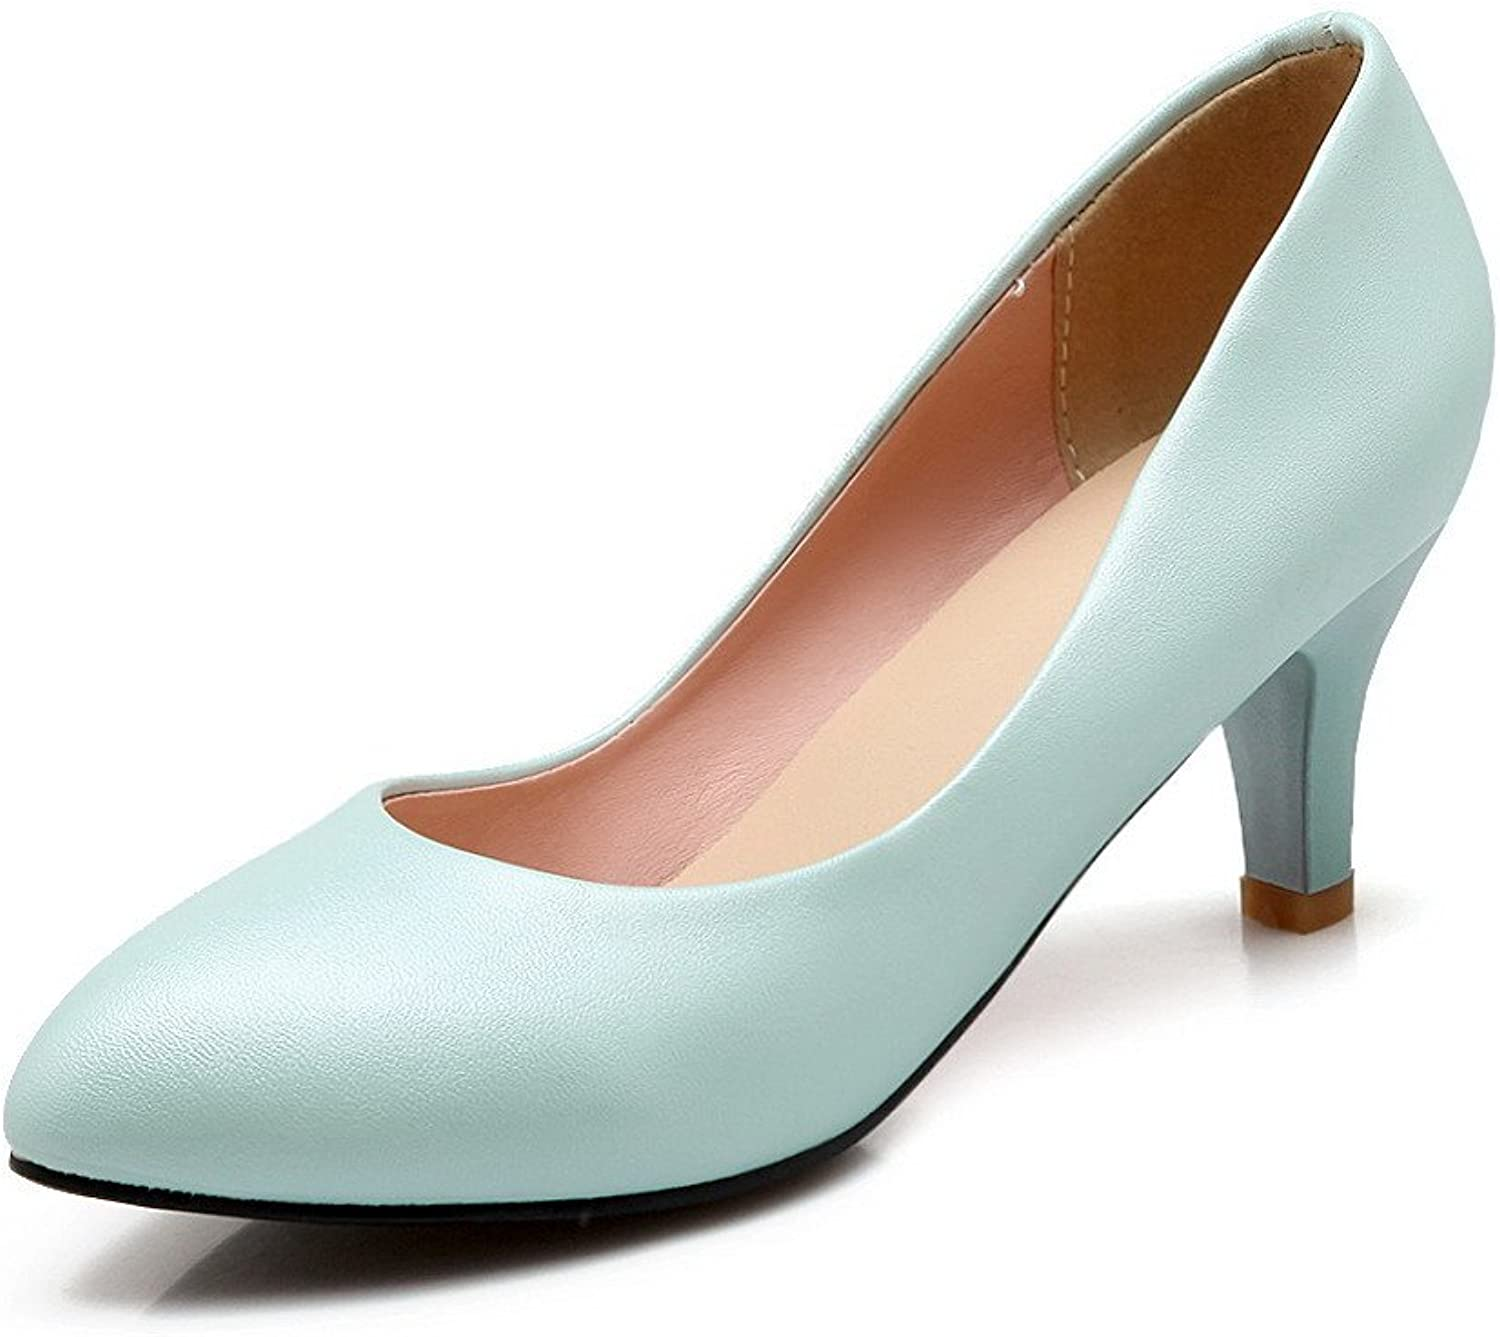 WeenFashion Women's Solid Soft Material Kitten-Heels Pull-on Pointed Closed Toe Pumps-shoes